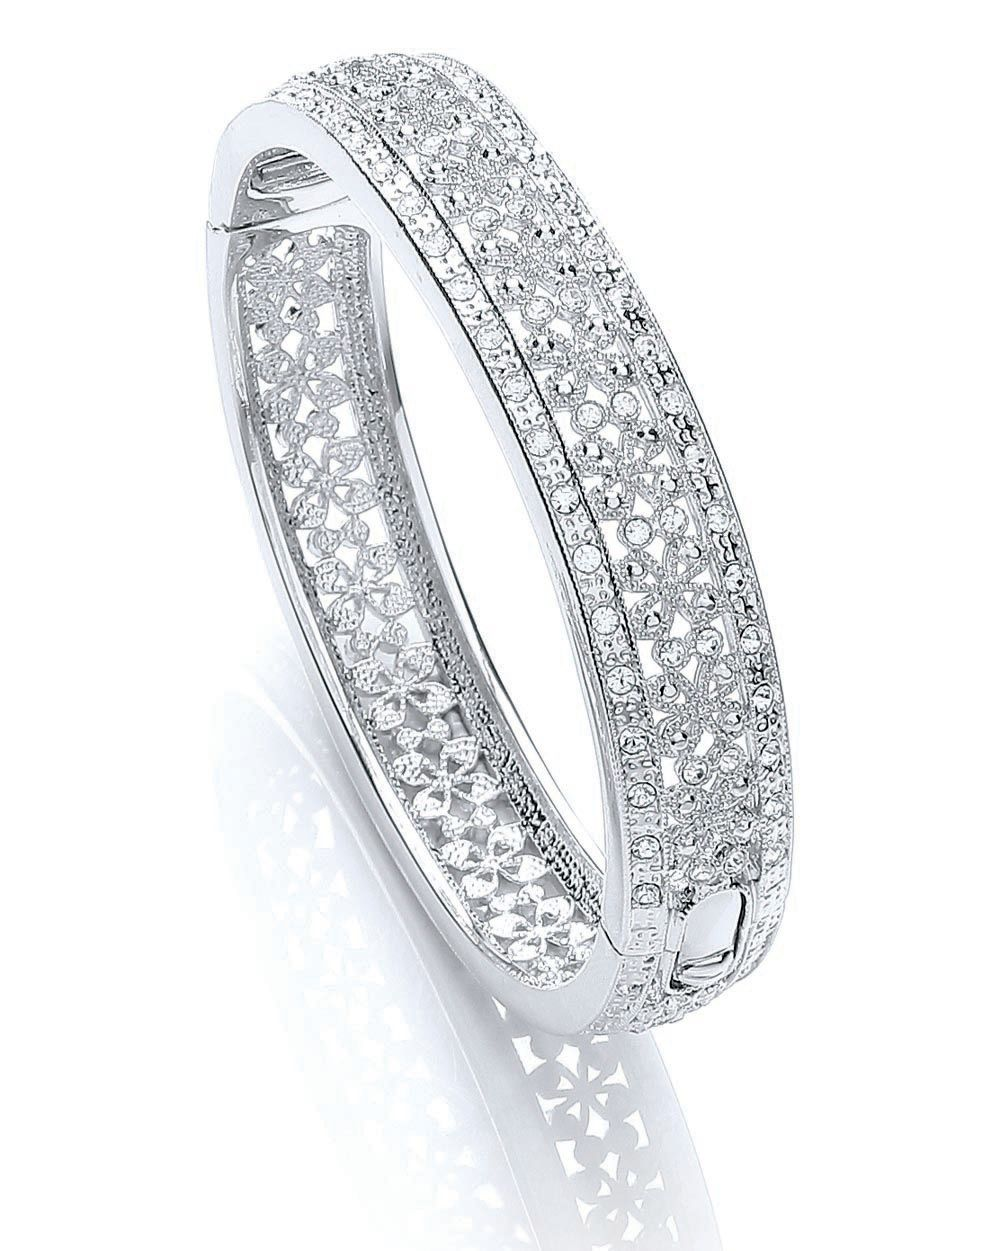 Rhodium vintage floral bangle